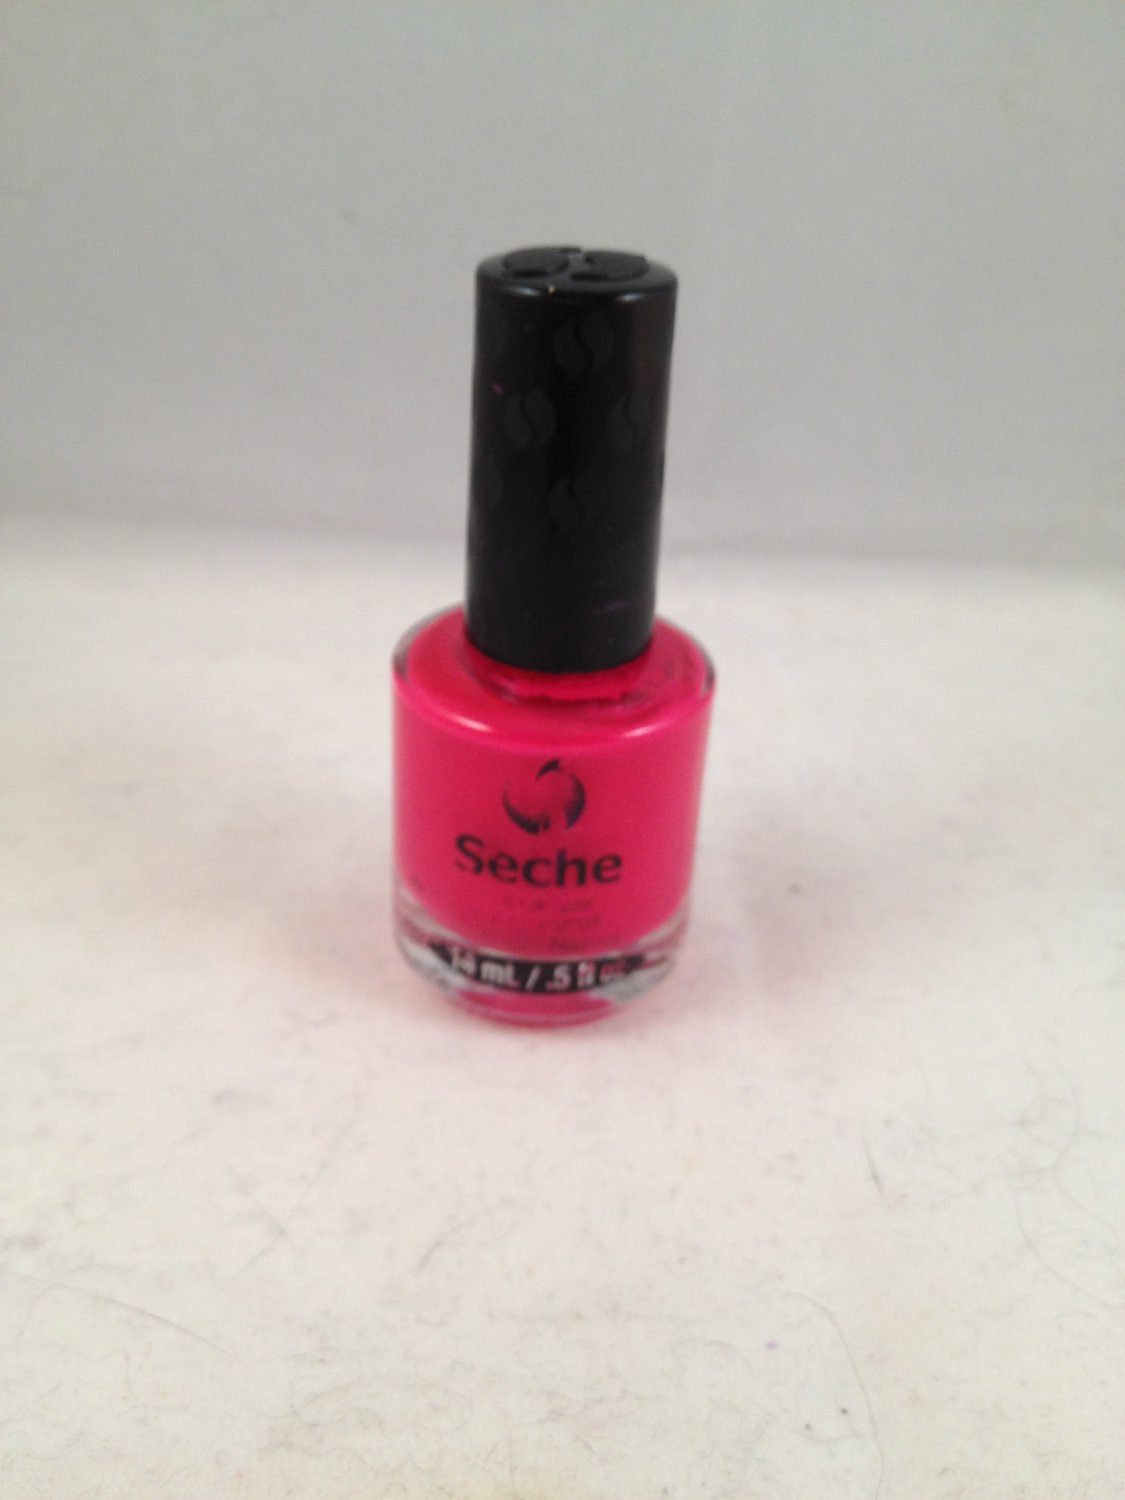 Seche Nail Lacquer Audacious color polish red fuchsia